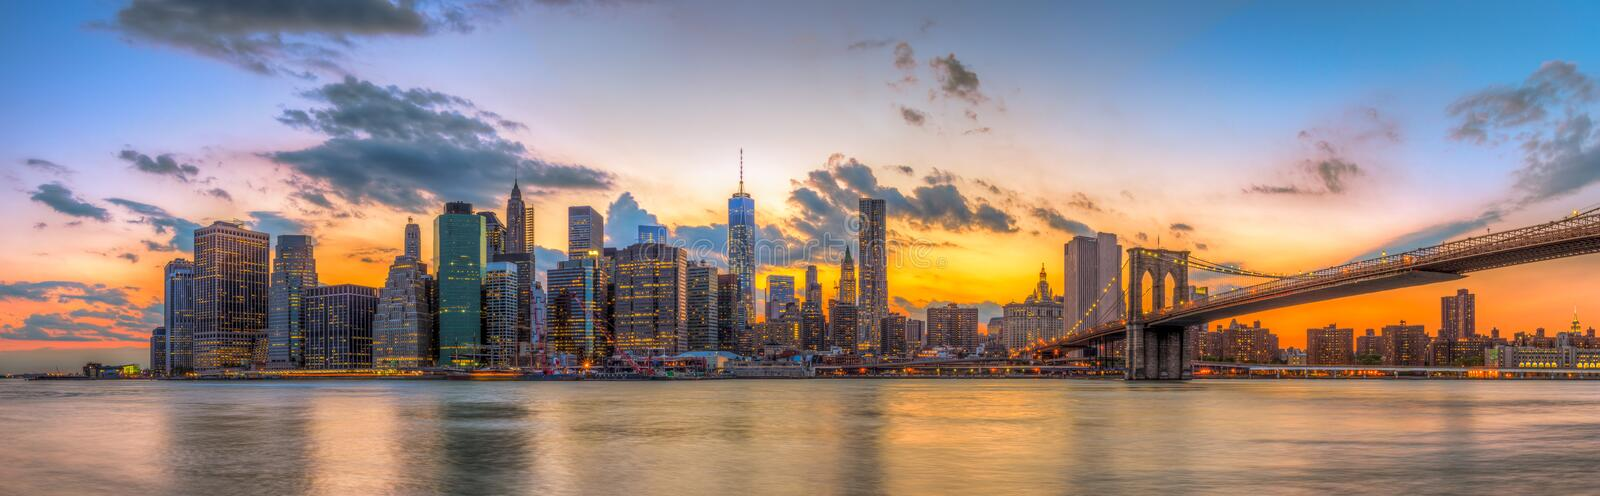 Brooklyn bridge and downtown New York City in beautiful sunset royalty free stock images